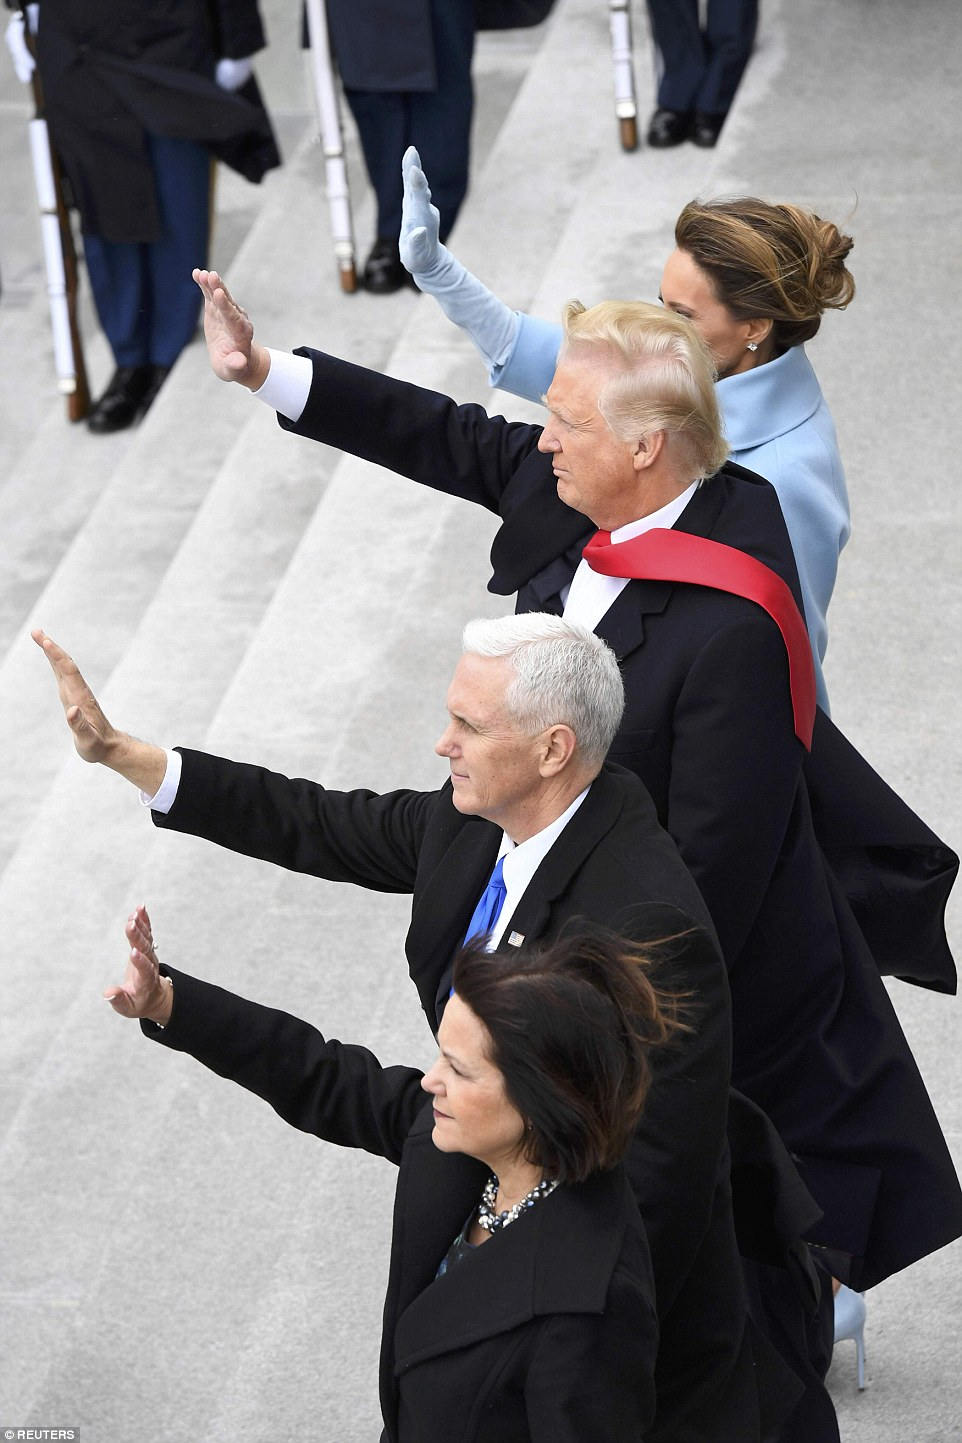 President Donald Trump, First Lady Melania Trump, Vice President Mike Pence, and Karen Pence wave as former President Barack Obama and Michelle Obama depart during the 2017 Presidential Inauguration at the U.S. Capitol in Washington, D.C., U.S.